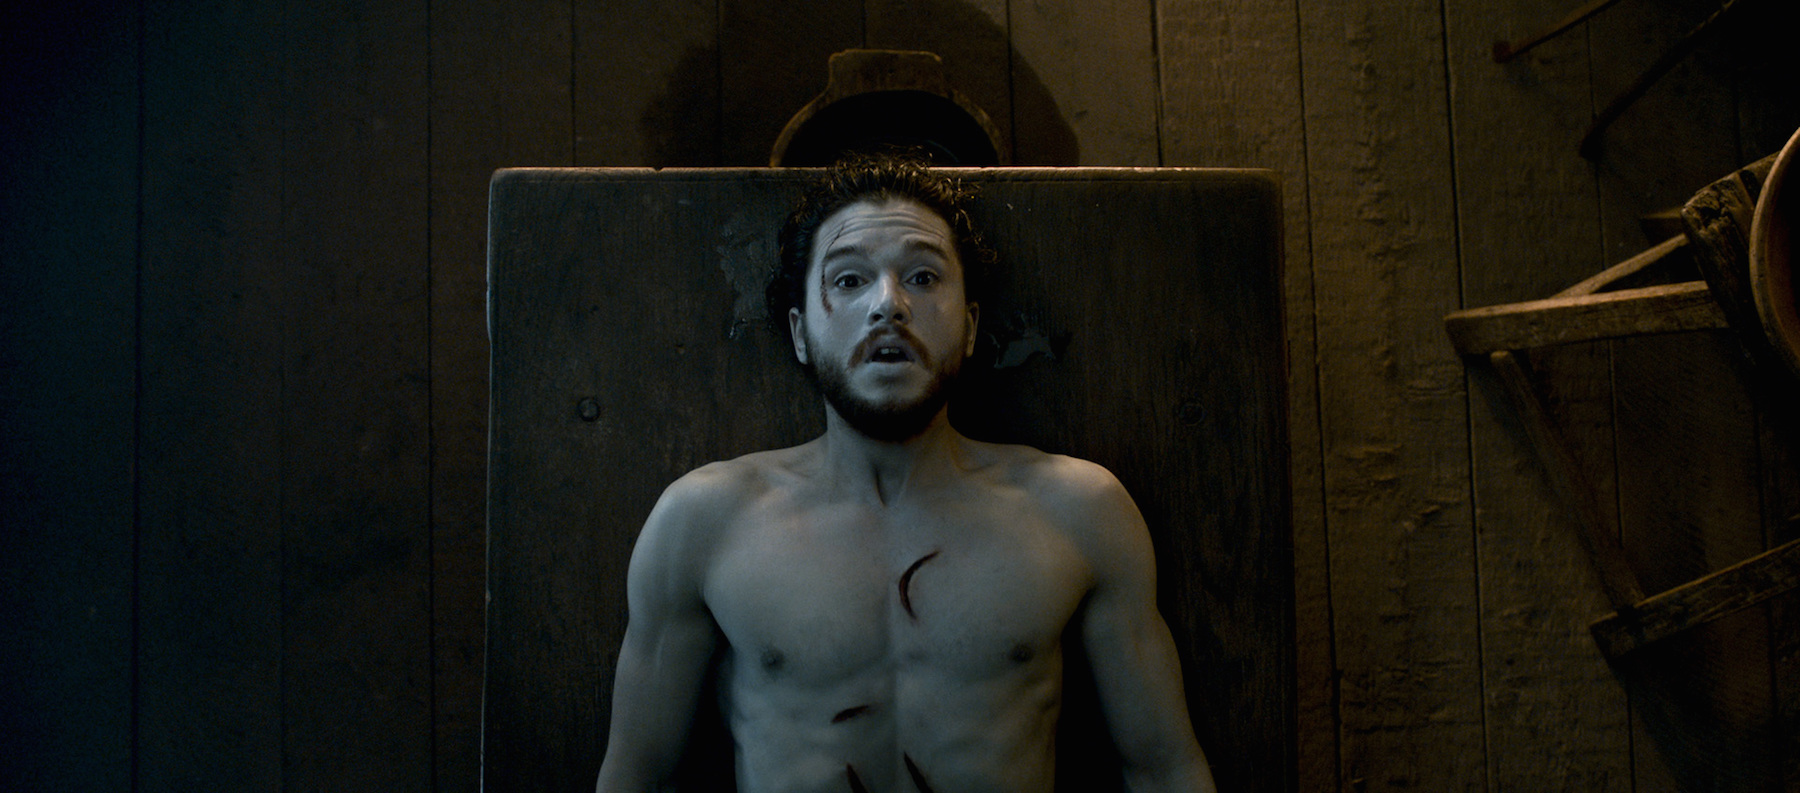 15 other things we'd like Kit Harington to apologize for today, aside from being ~dead~